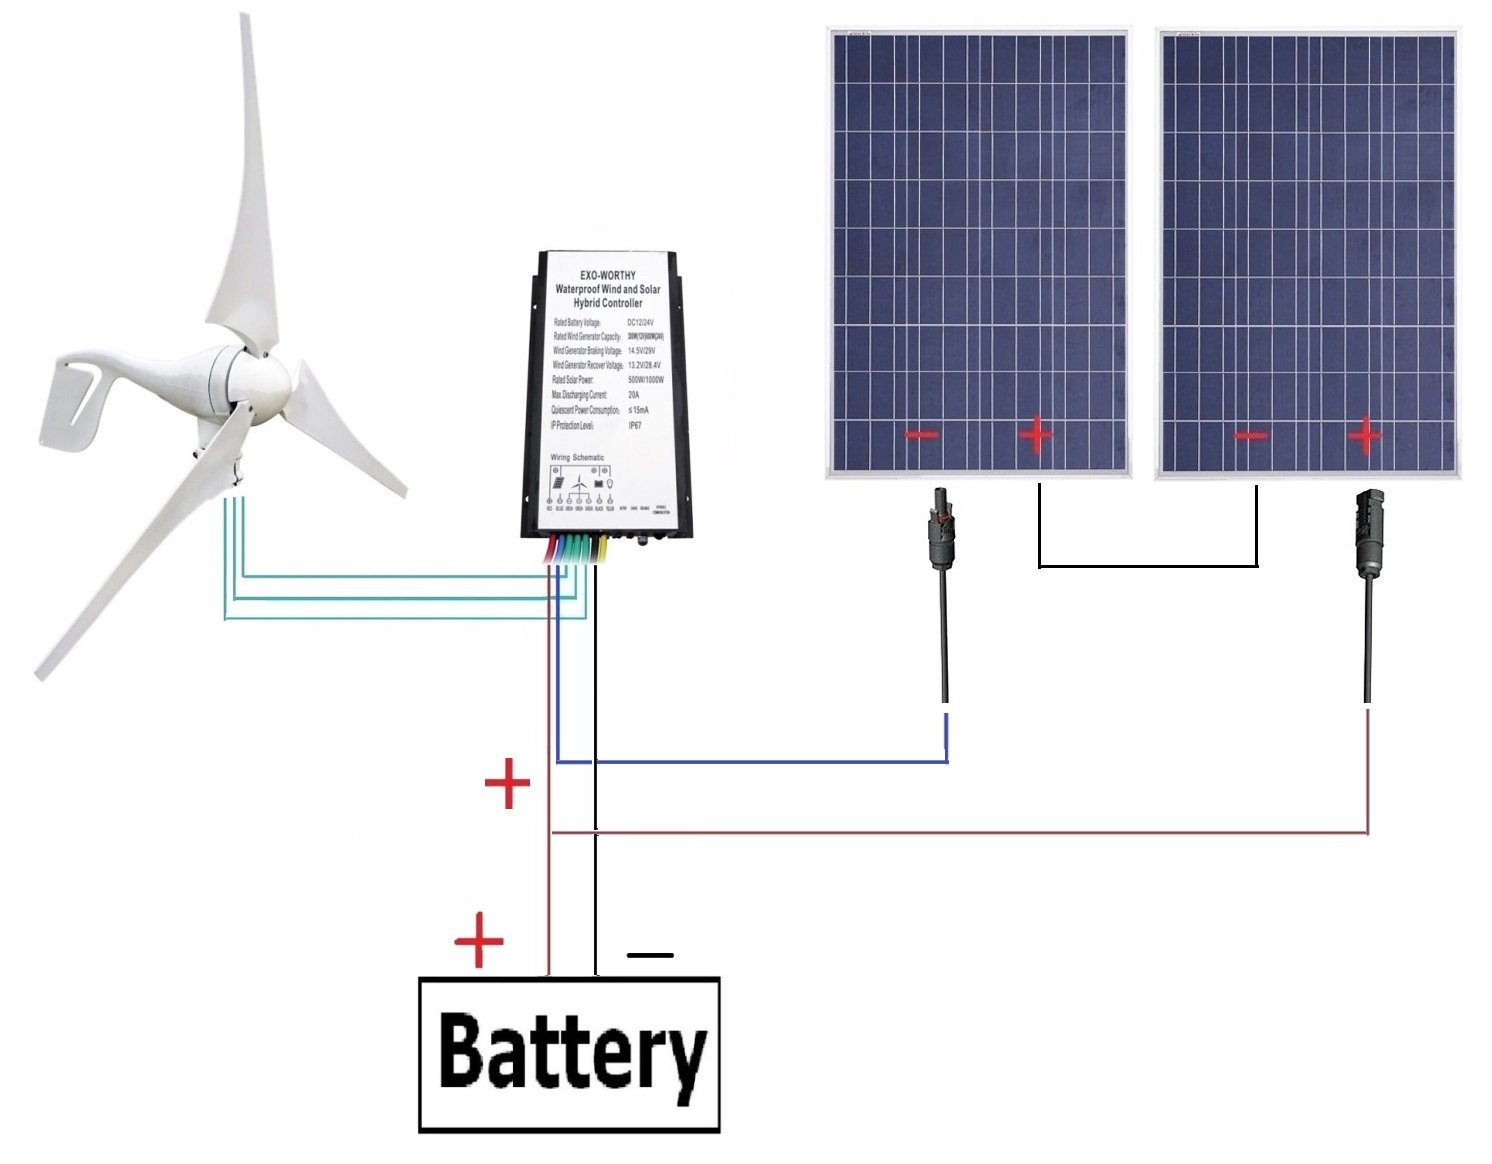 Watt Solar System Diagram For Wiring on wiring solar power system, wiring diagram for solar lights, wiring diagram for solar cells, wiring diagram for photovoltaic systems, wiring diagram for solar generator, schematic for solar systems,